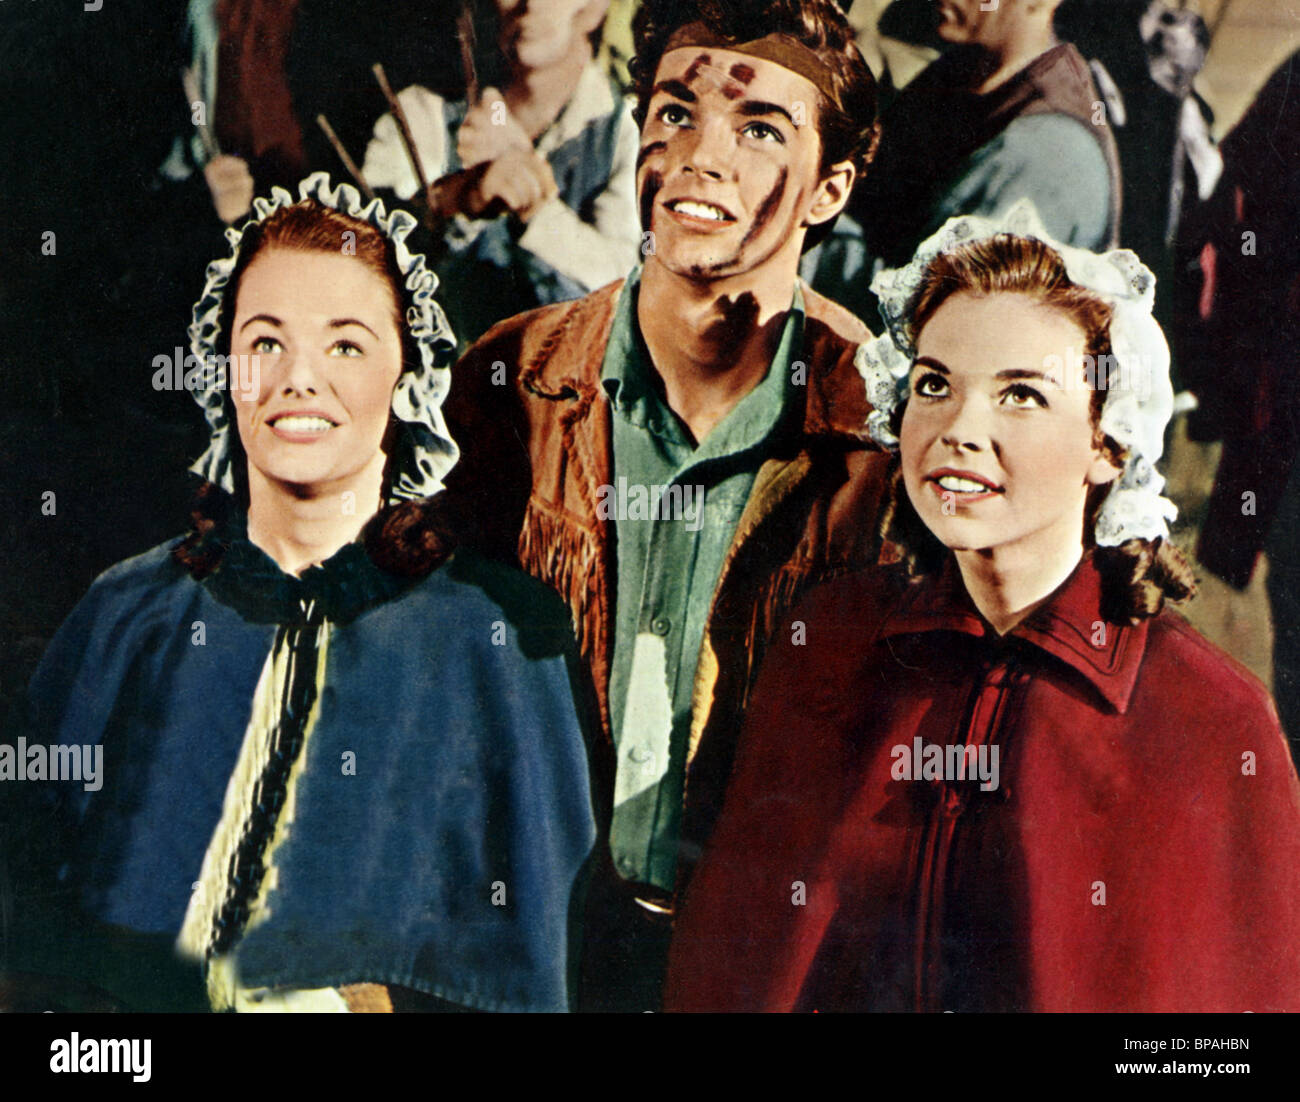 VIRGINIA CHRISTINE RICHARD BEYMER LUANA PATTEN JOHNNY TREMAIN 1957